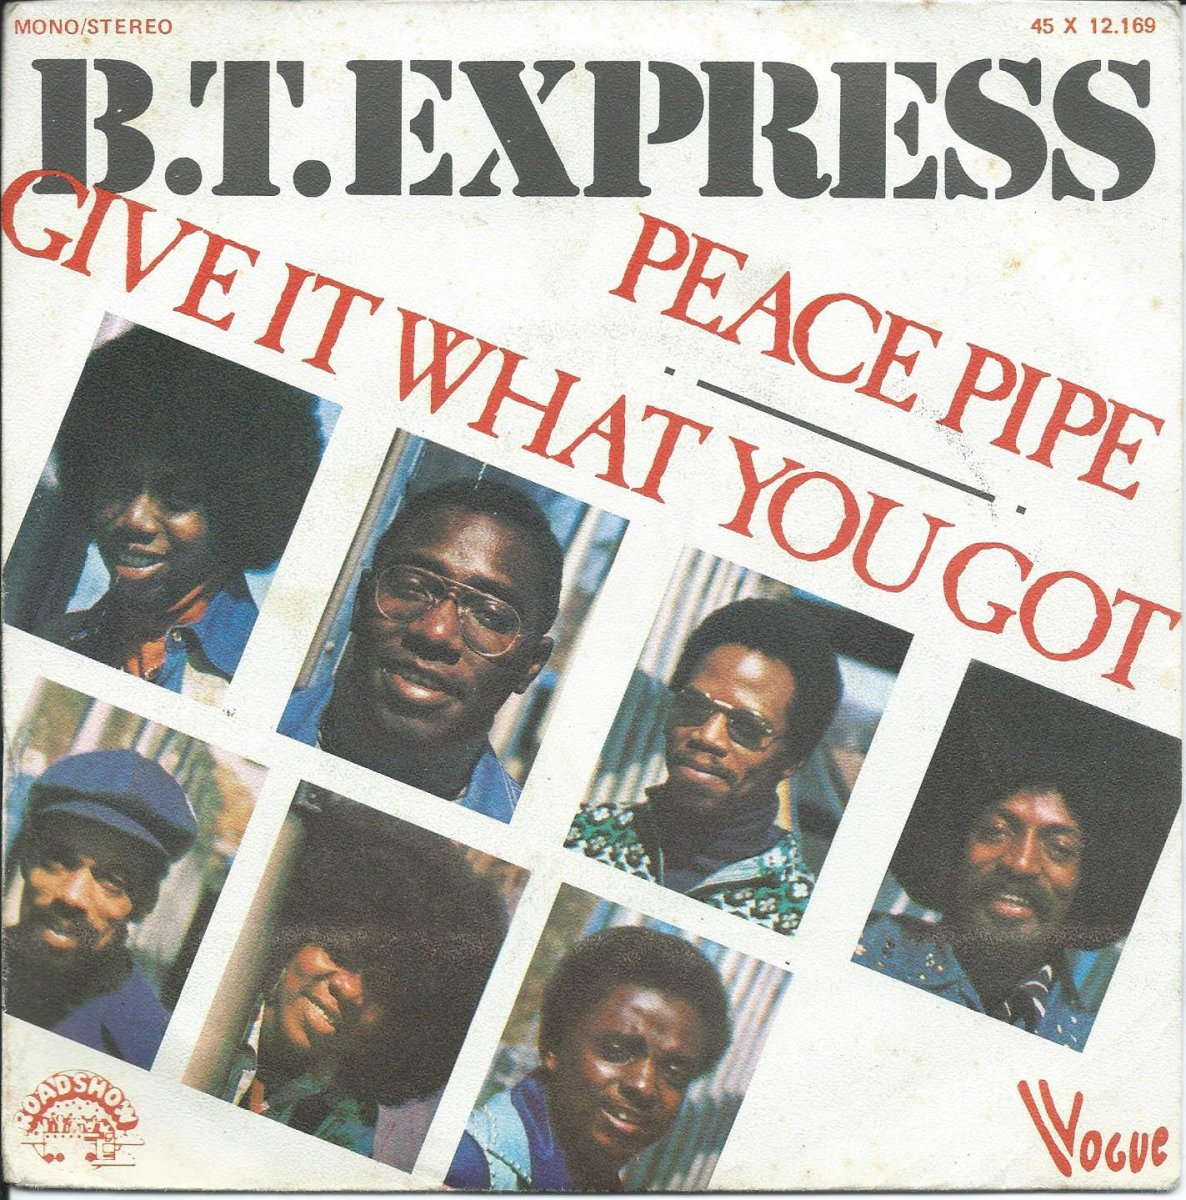 B.T. EXPRESS ‎/ PEACE PIPE / GIVE IT WHAT YOU GOT (7